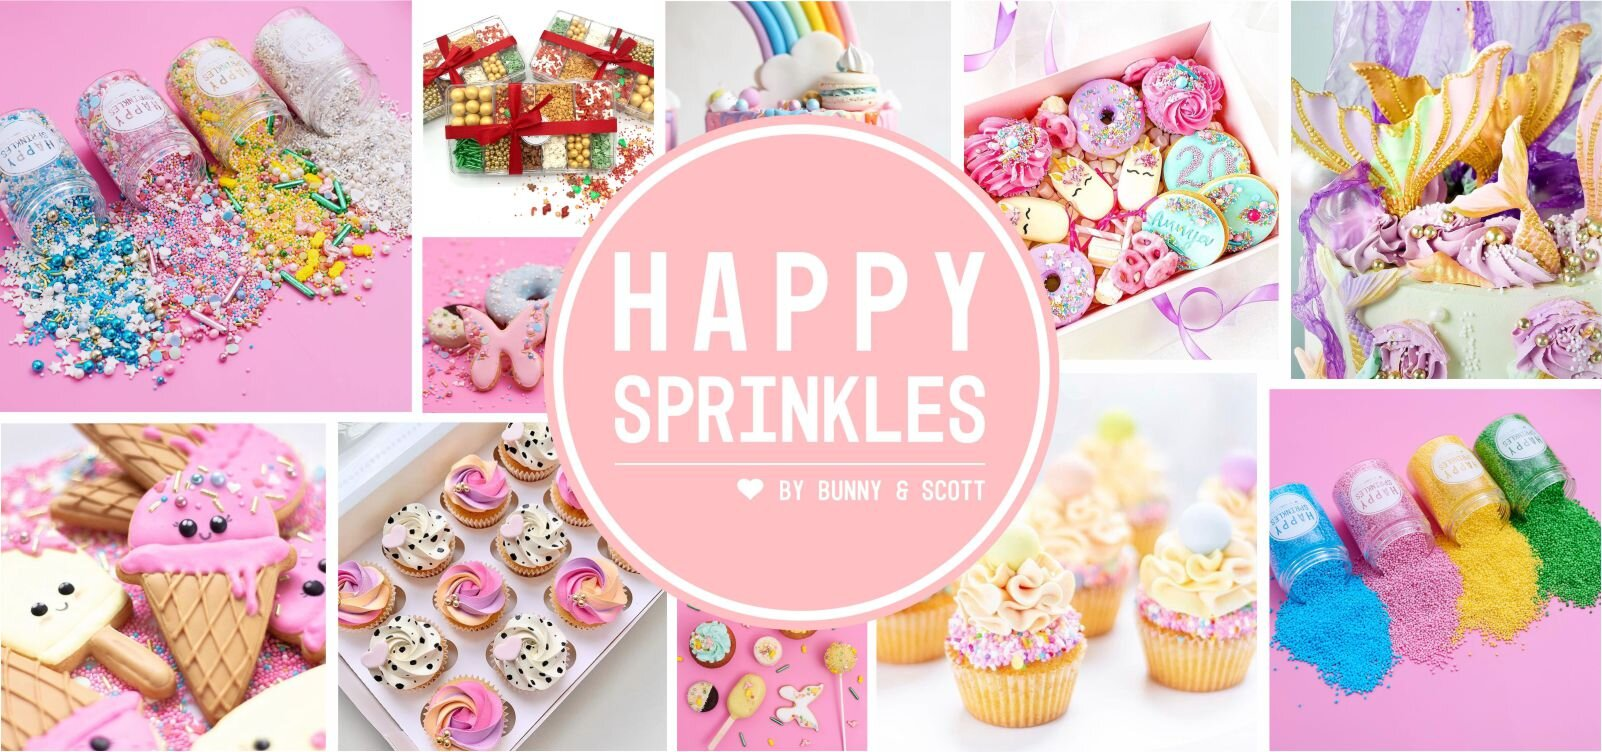 HAPPY SPRINKLES